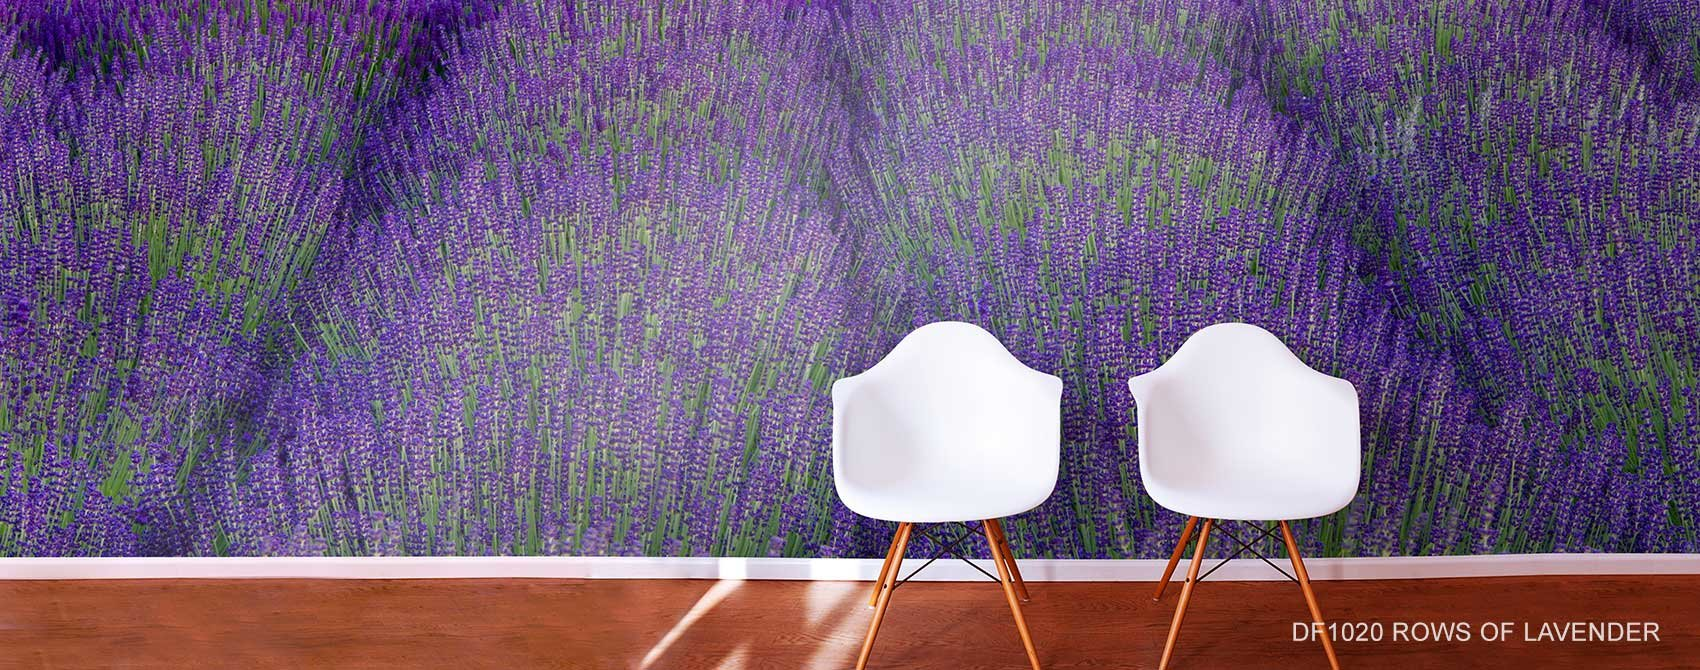 Rows Of Lavender Wall Mural